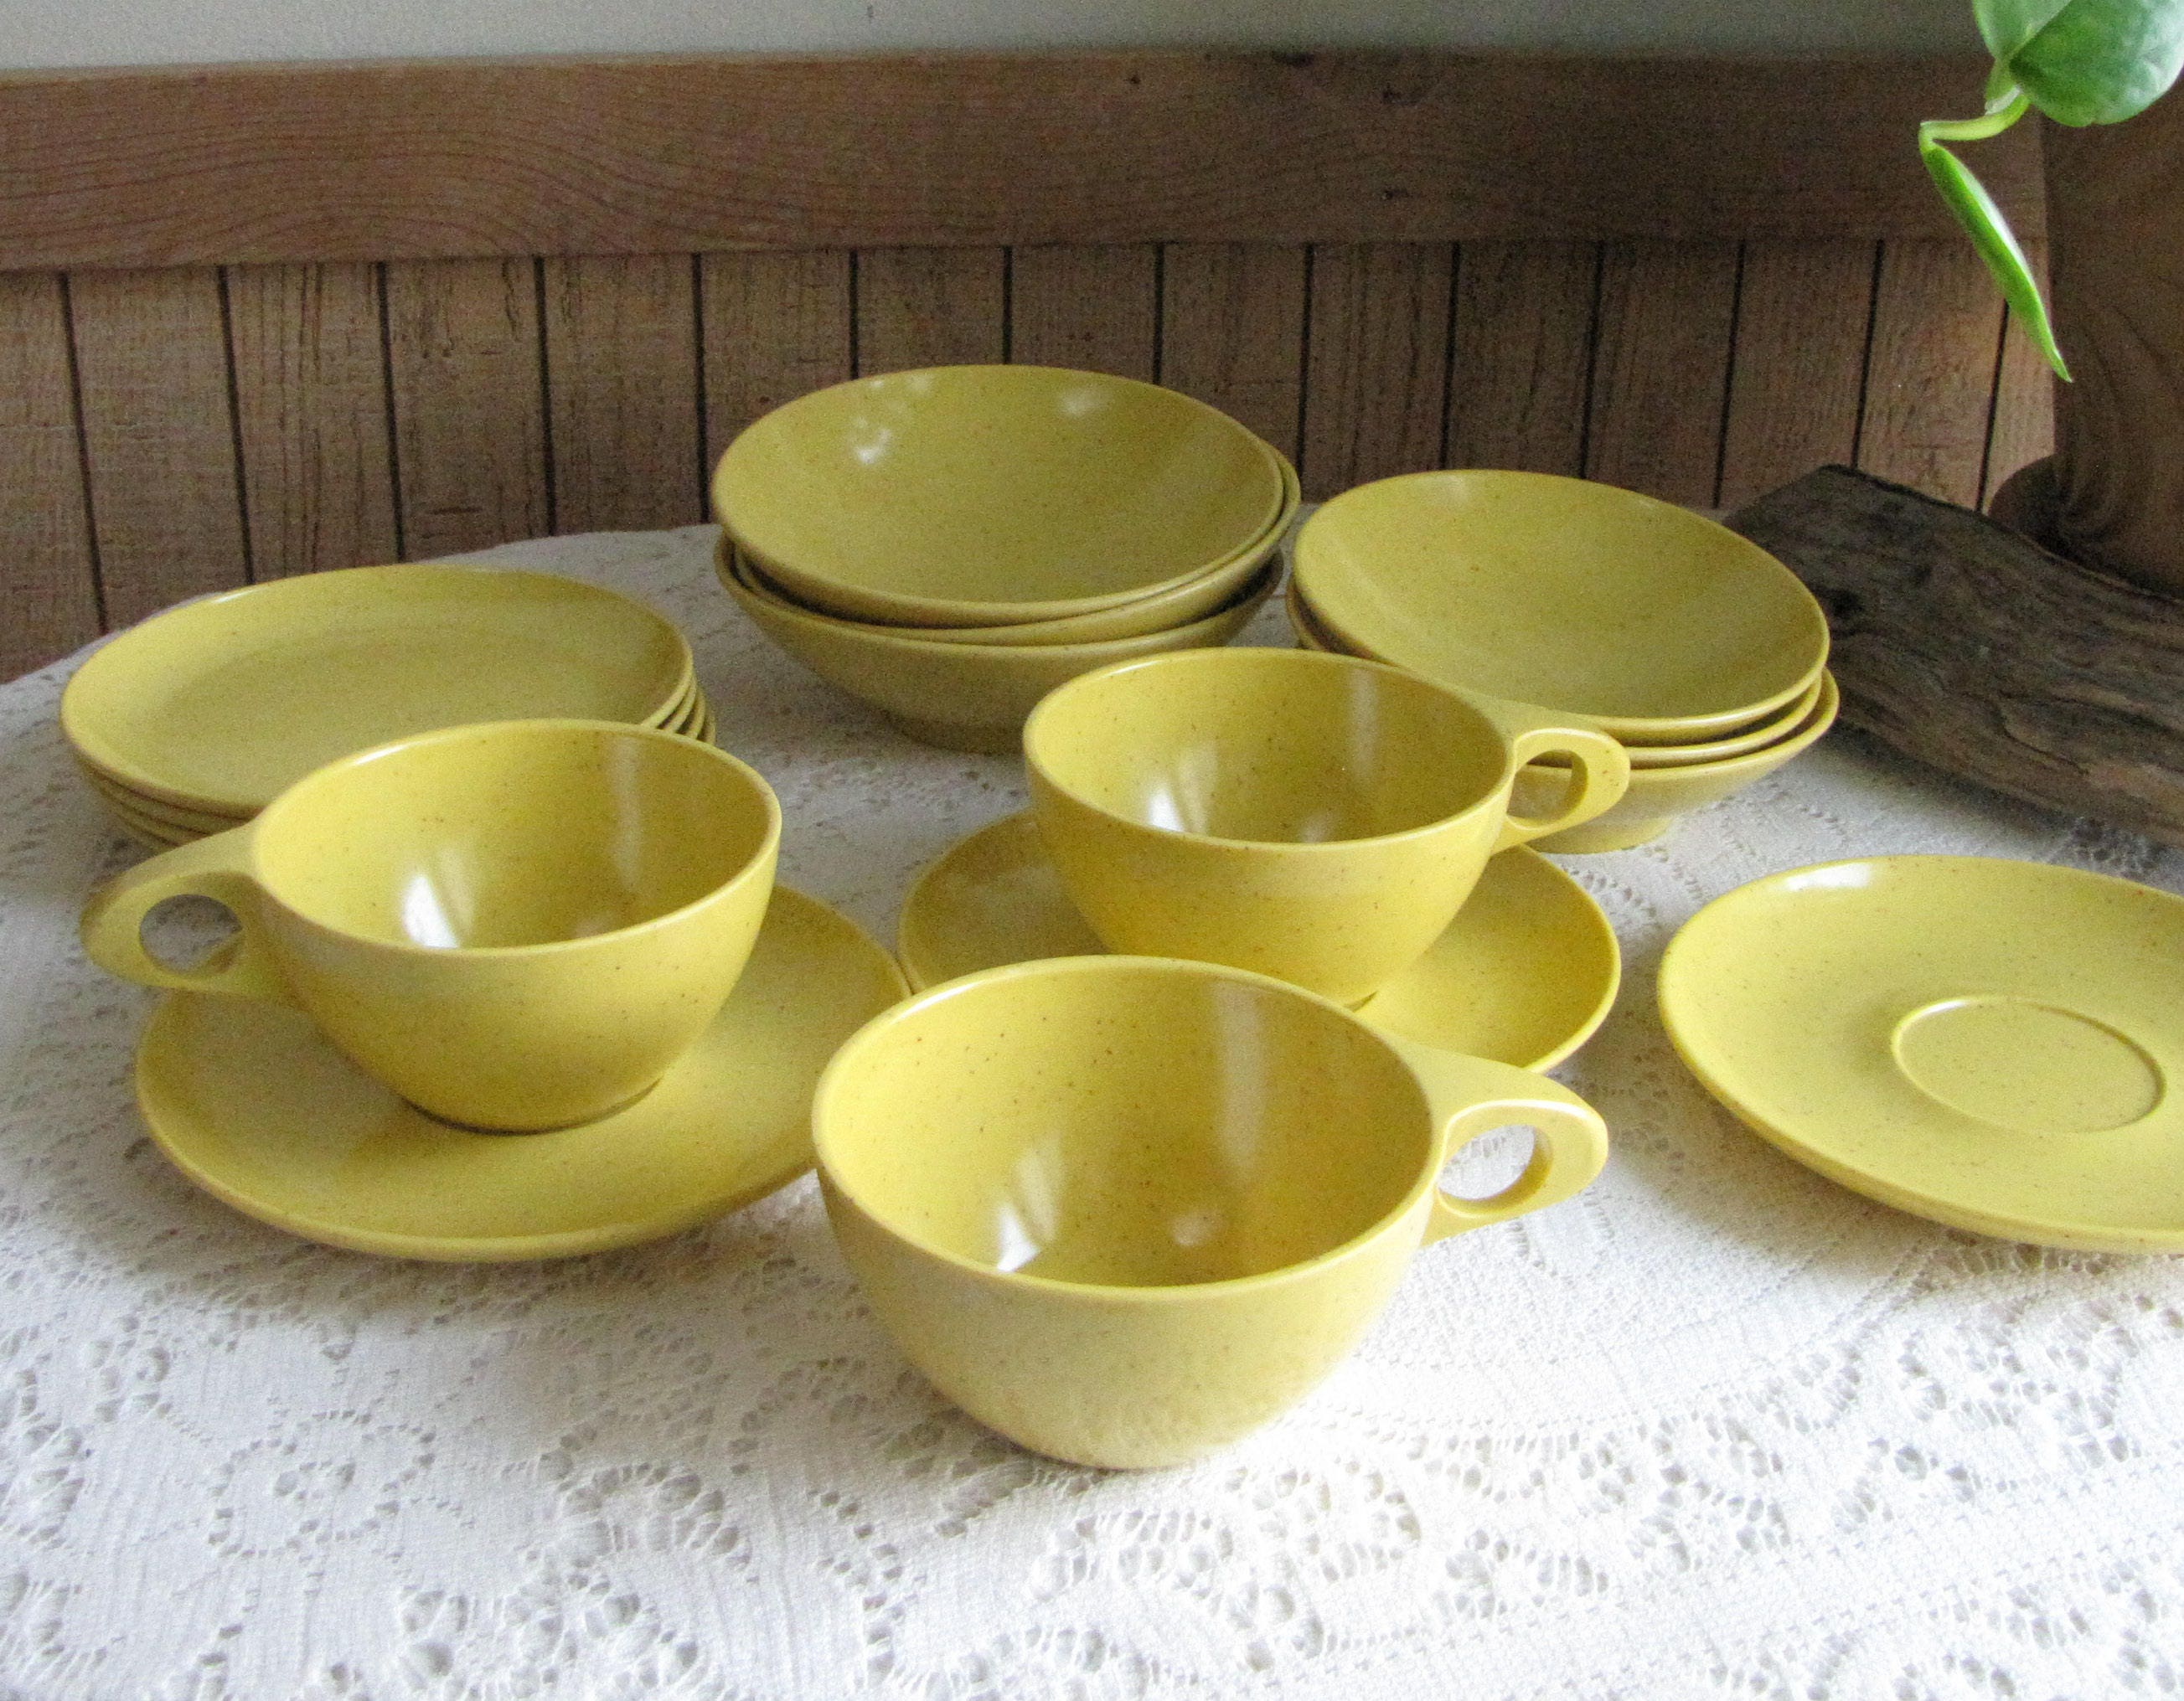 Kenro Yellow Vintage Dinnerware and Replacements Melamine Dishes Speckled Yellow Mid-Century 16 Pieces & Kenro Yellow Vintage Dinnerware and Replacements Melamine Dishes ...